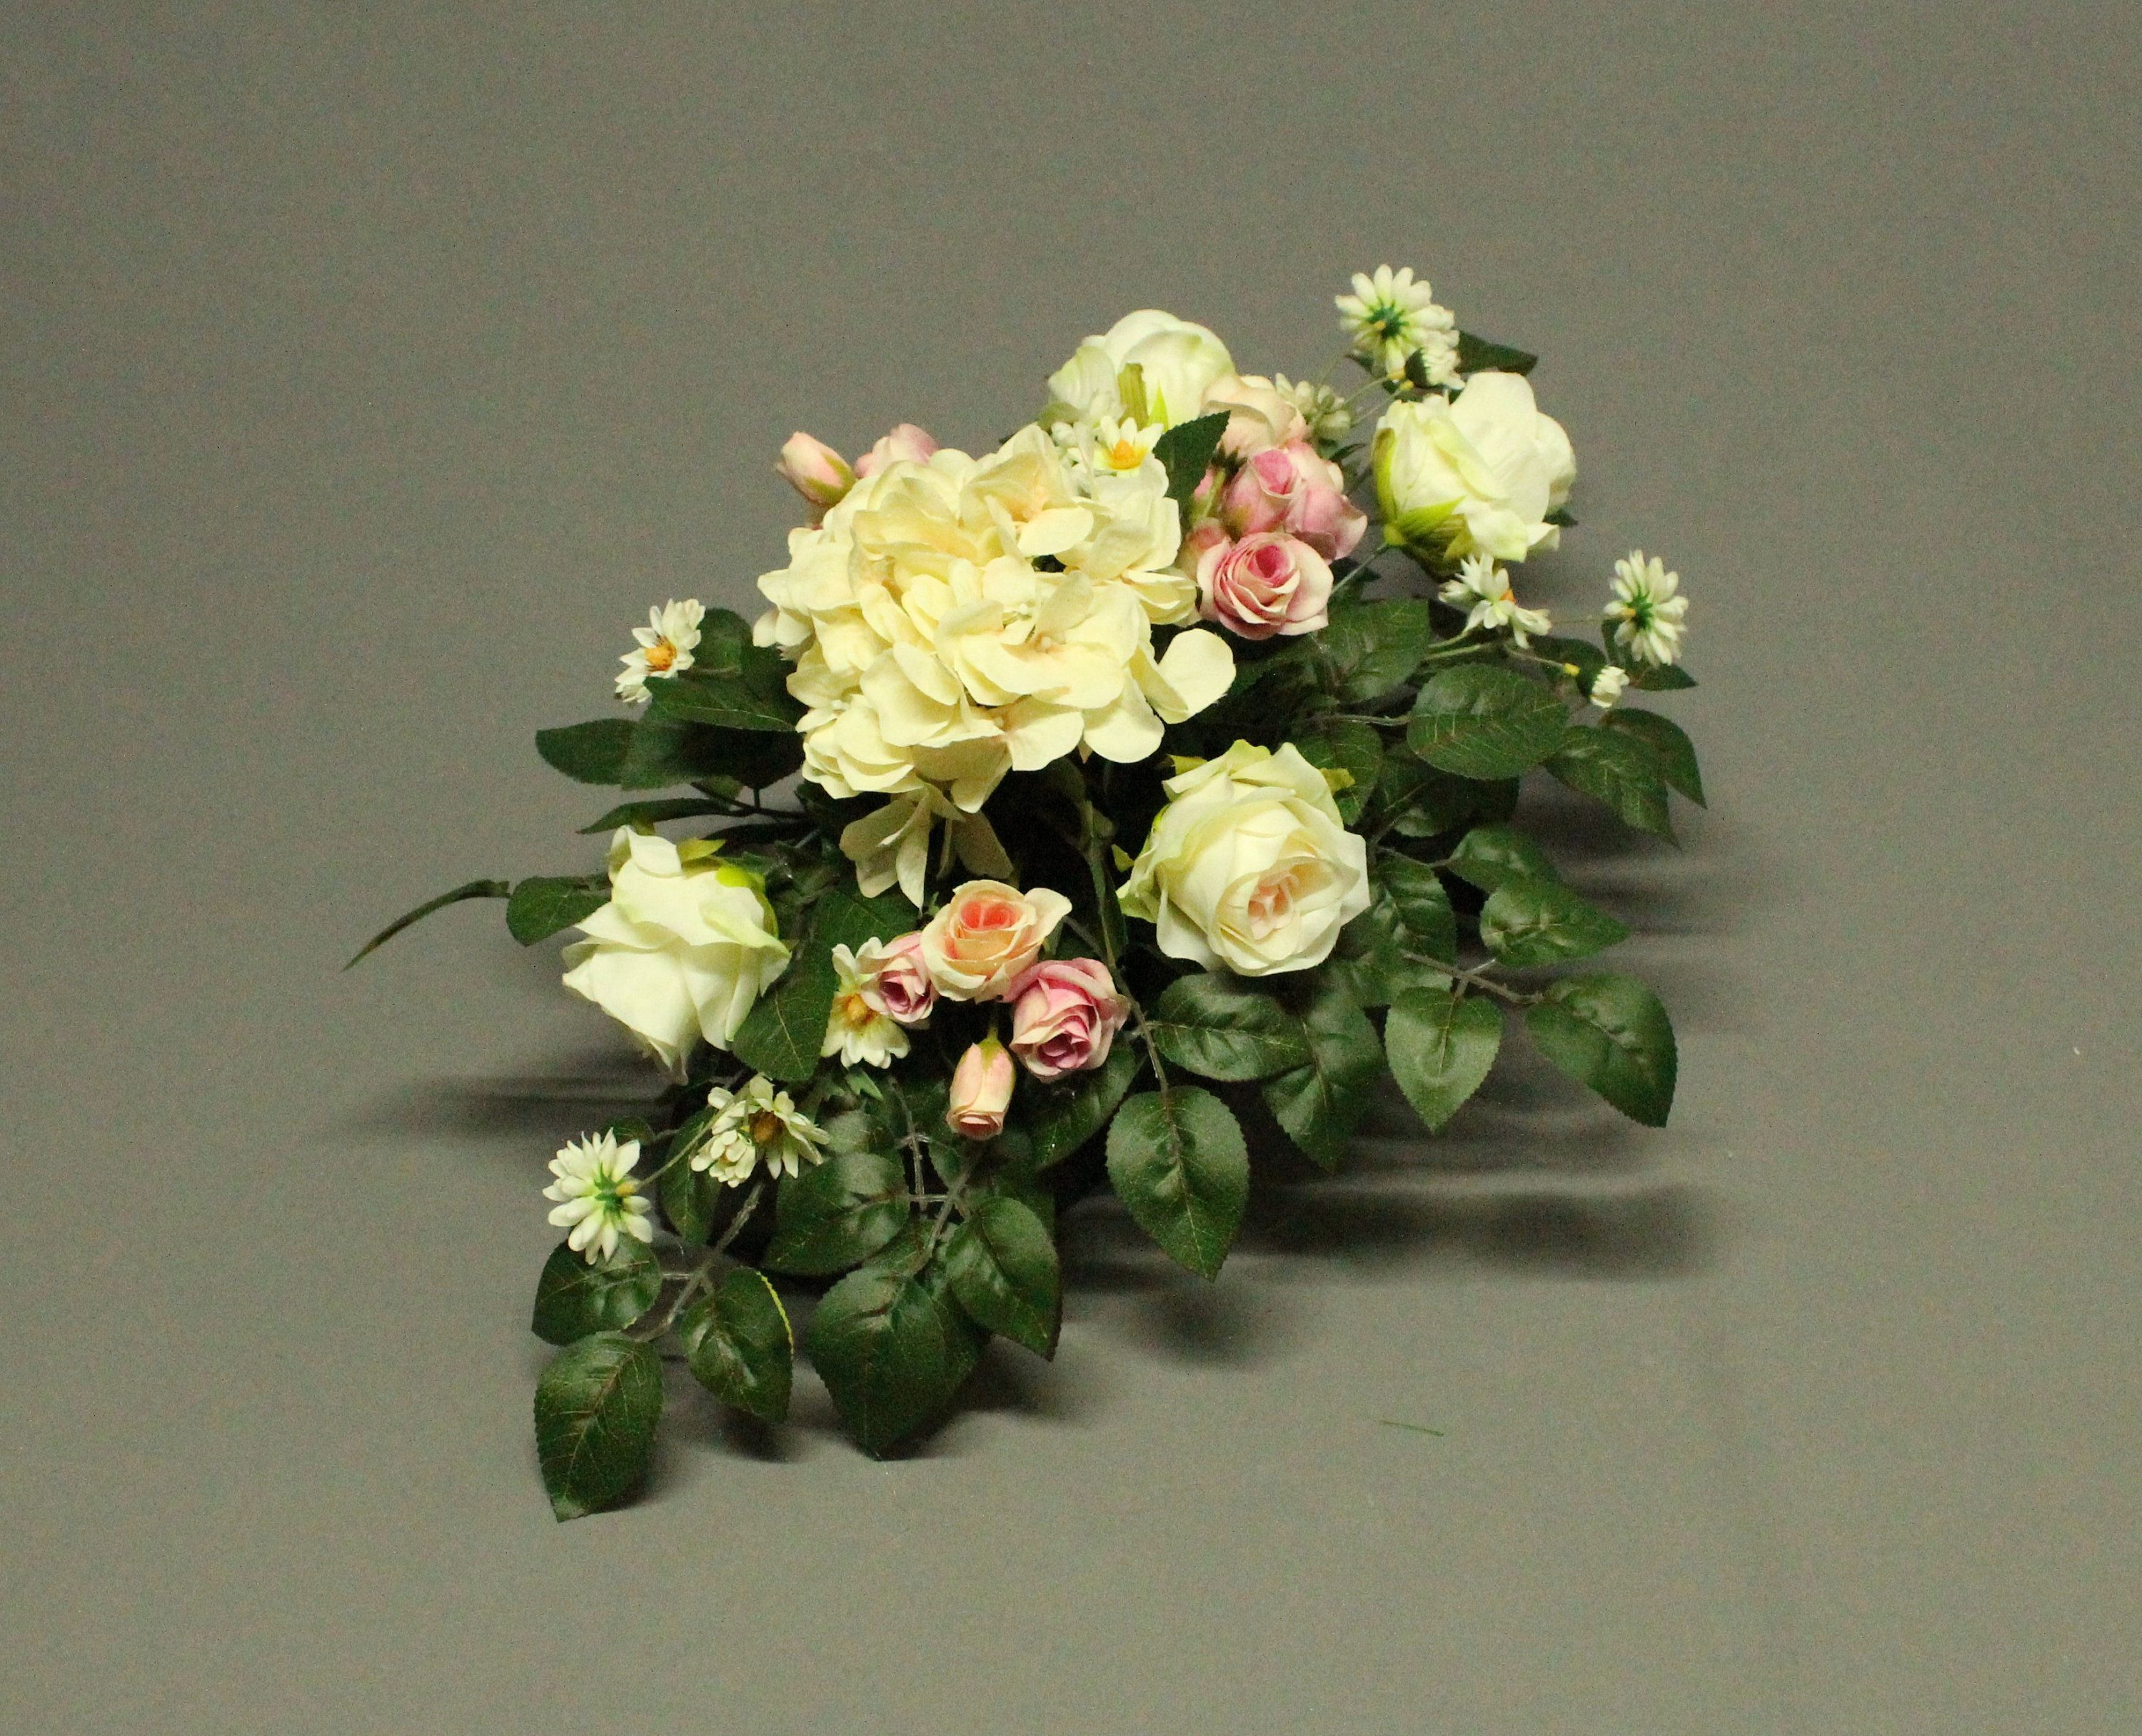 Tombstone Decoration Artificial Flowers Decoration For Monument Tomb For Grave Cemetery Decorations Feast Of The Dead Funeral Decorations Cemetery Decorations Artificial Flowers Making A Bouquet